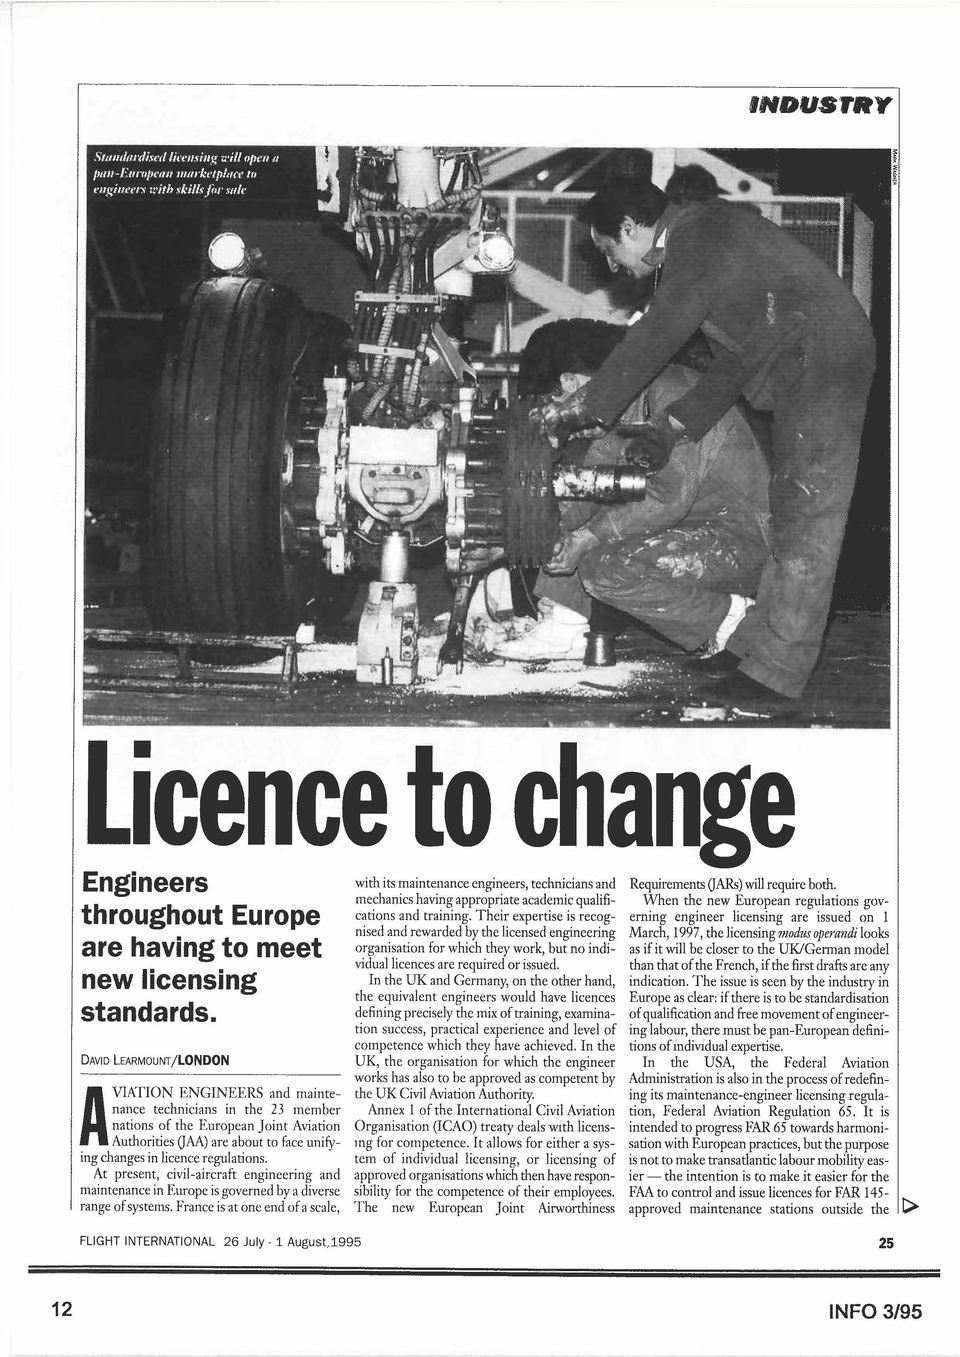 Their expertise is recog- erning engineer iicensing are issued on I nised and rewarded by the licensed engineering March, 1997.